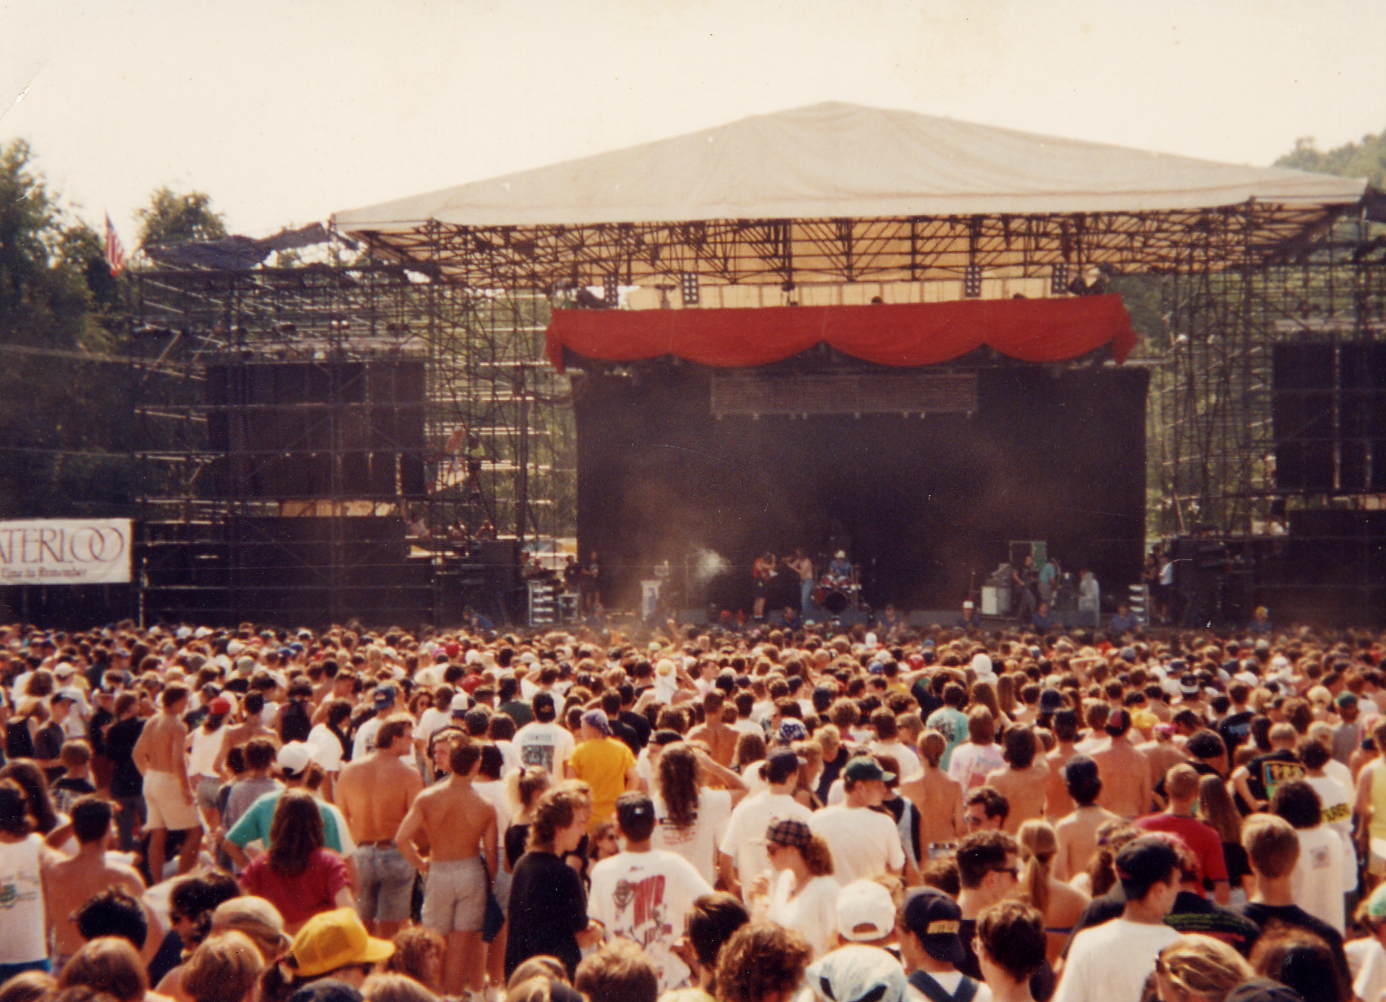 Lollapalooza New Jersey 1991, courtesy of Wikipedia